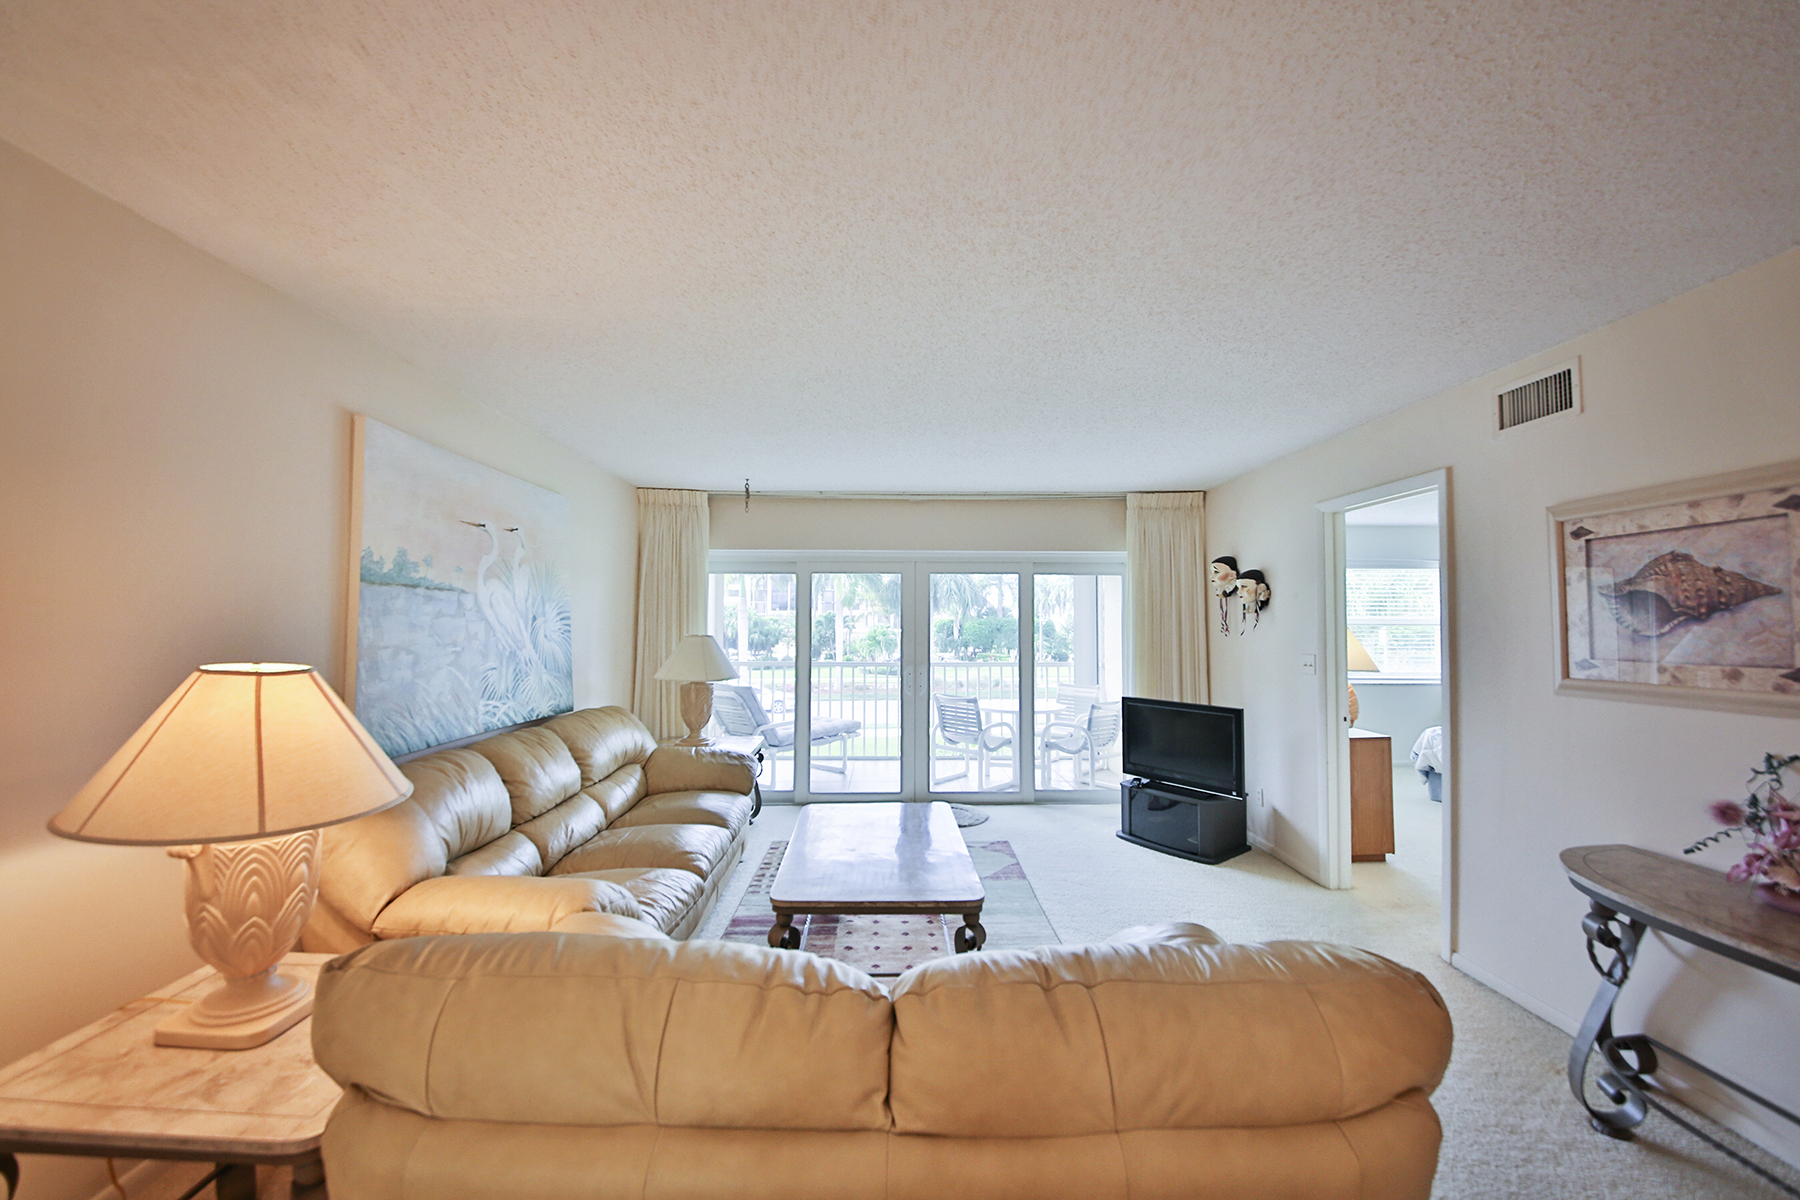 Condominium for Sale at MARCO ISLAND - BEACHVIEW 161 S Collier Blvd A202 Marco Island, Florida, 34145 United States